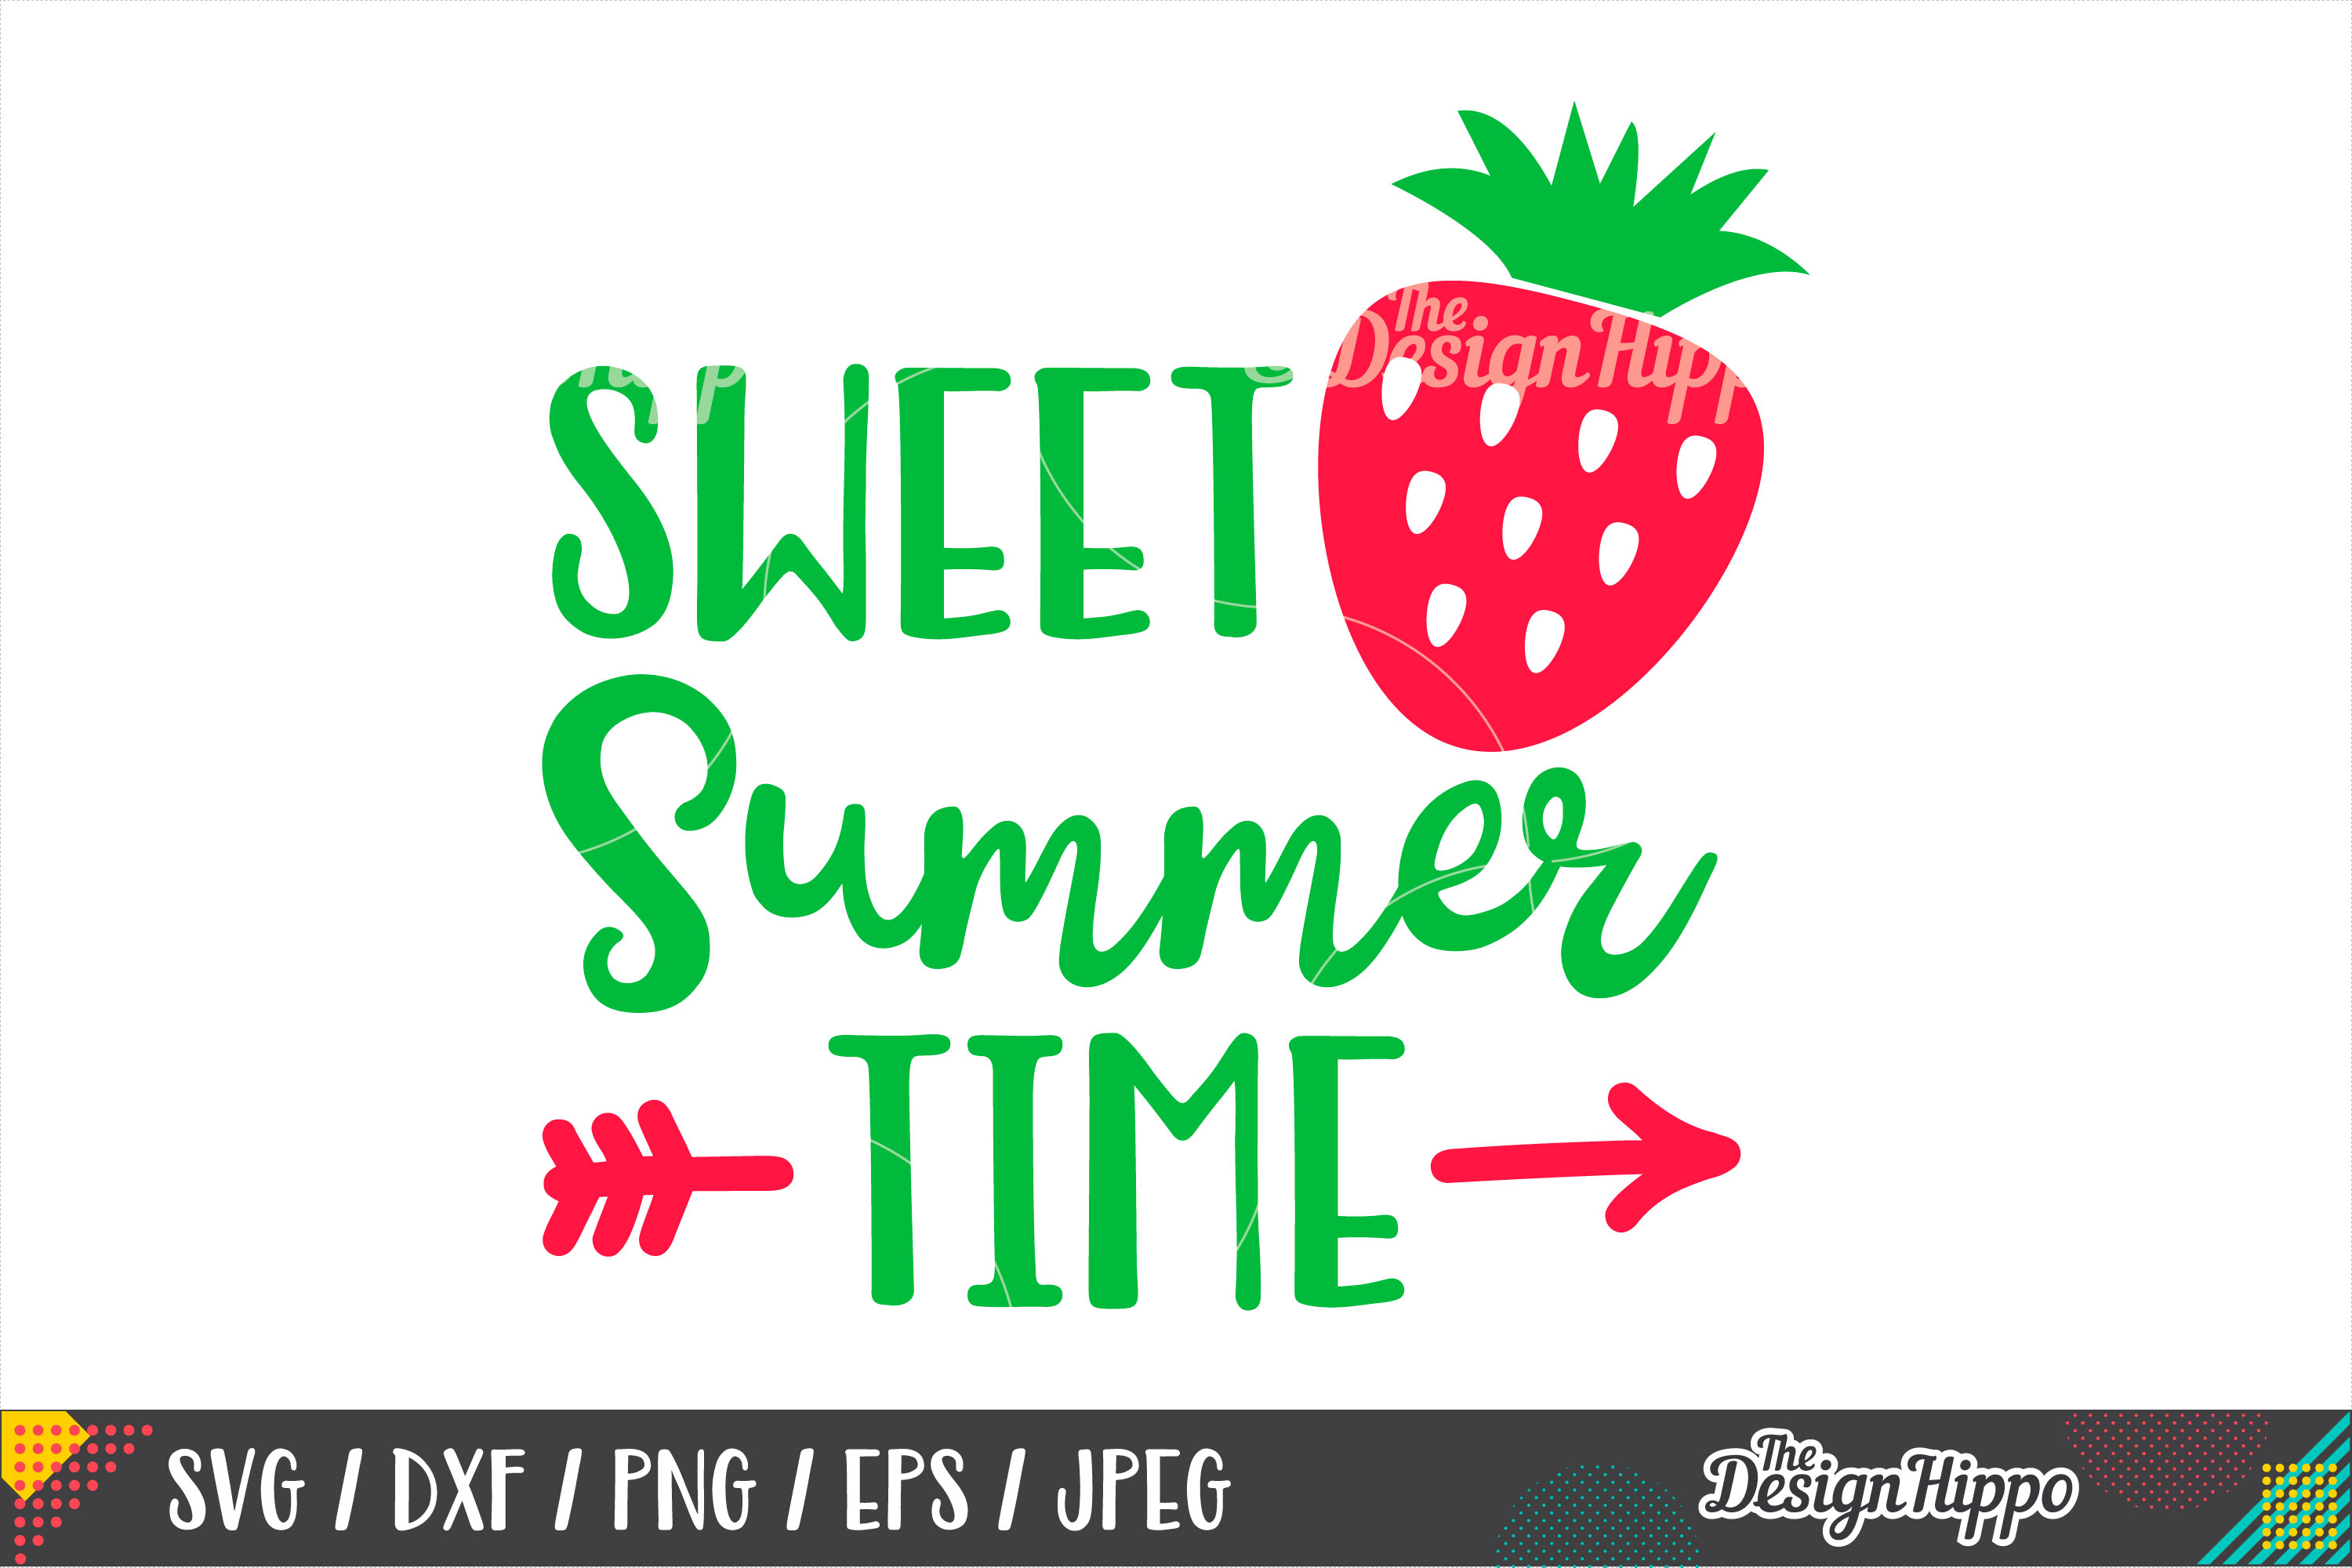 Sweet Summer Time SVG, Strawberry, Arrow, SVG PNG DXF Files example image 1